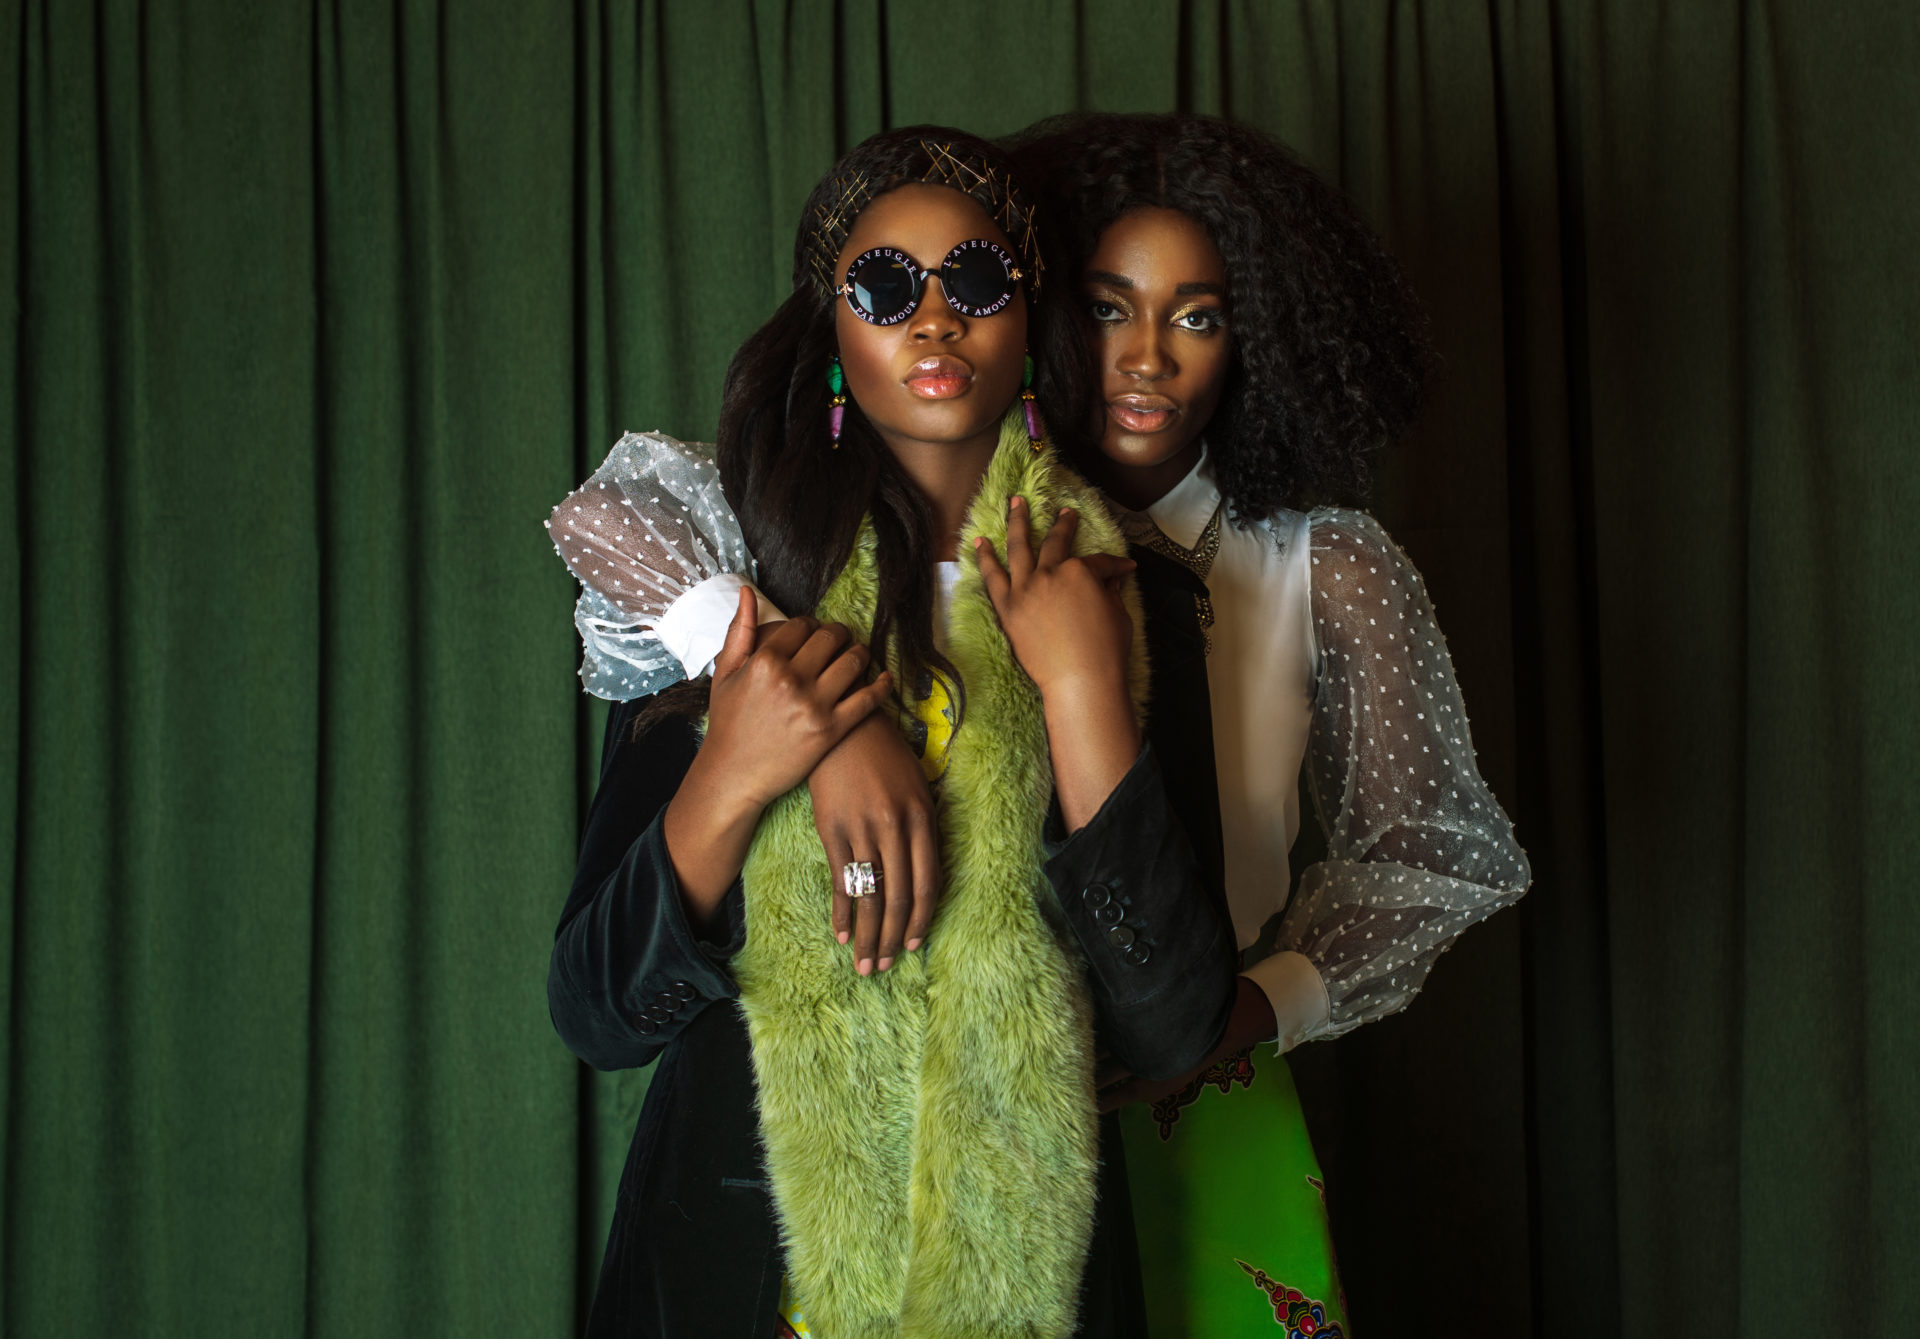 Two Attractive Black Ladies in African Designer Clothing